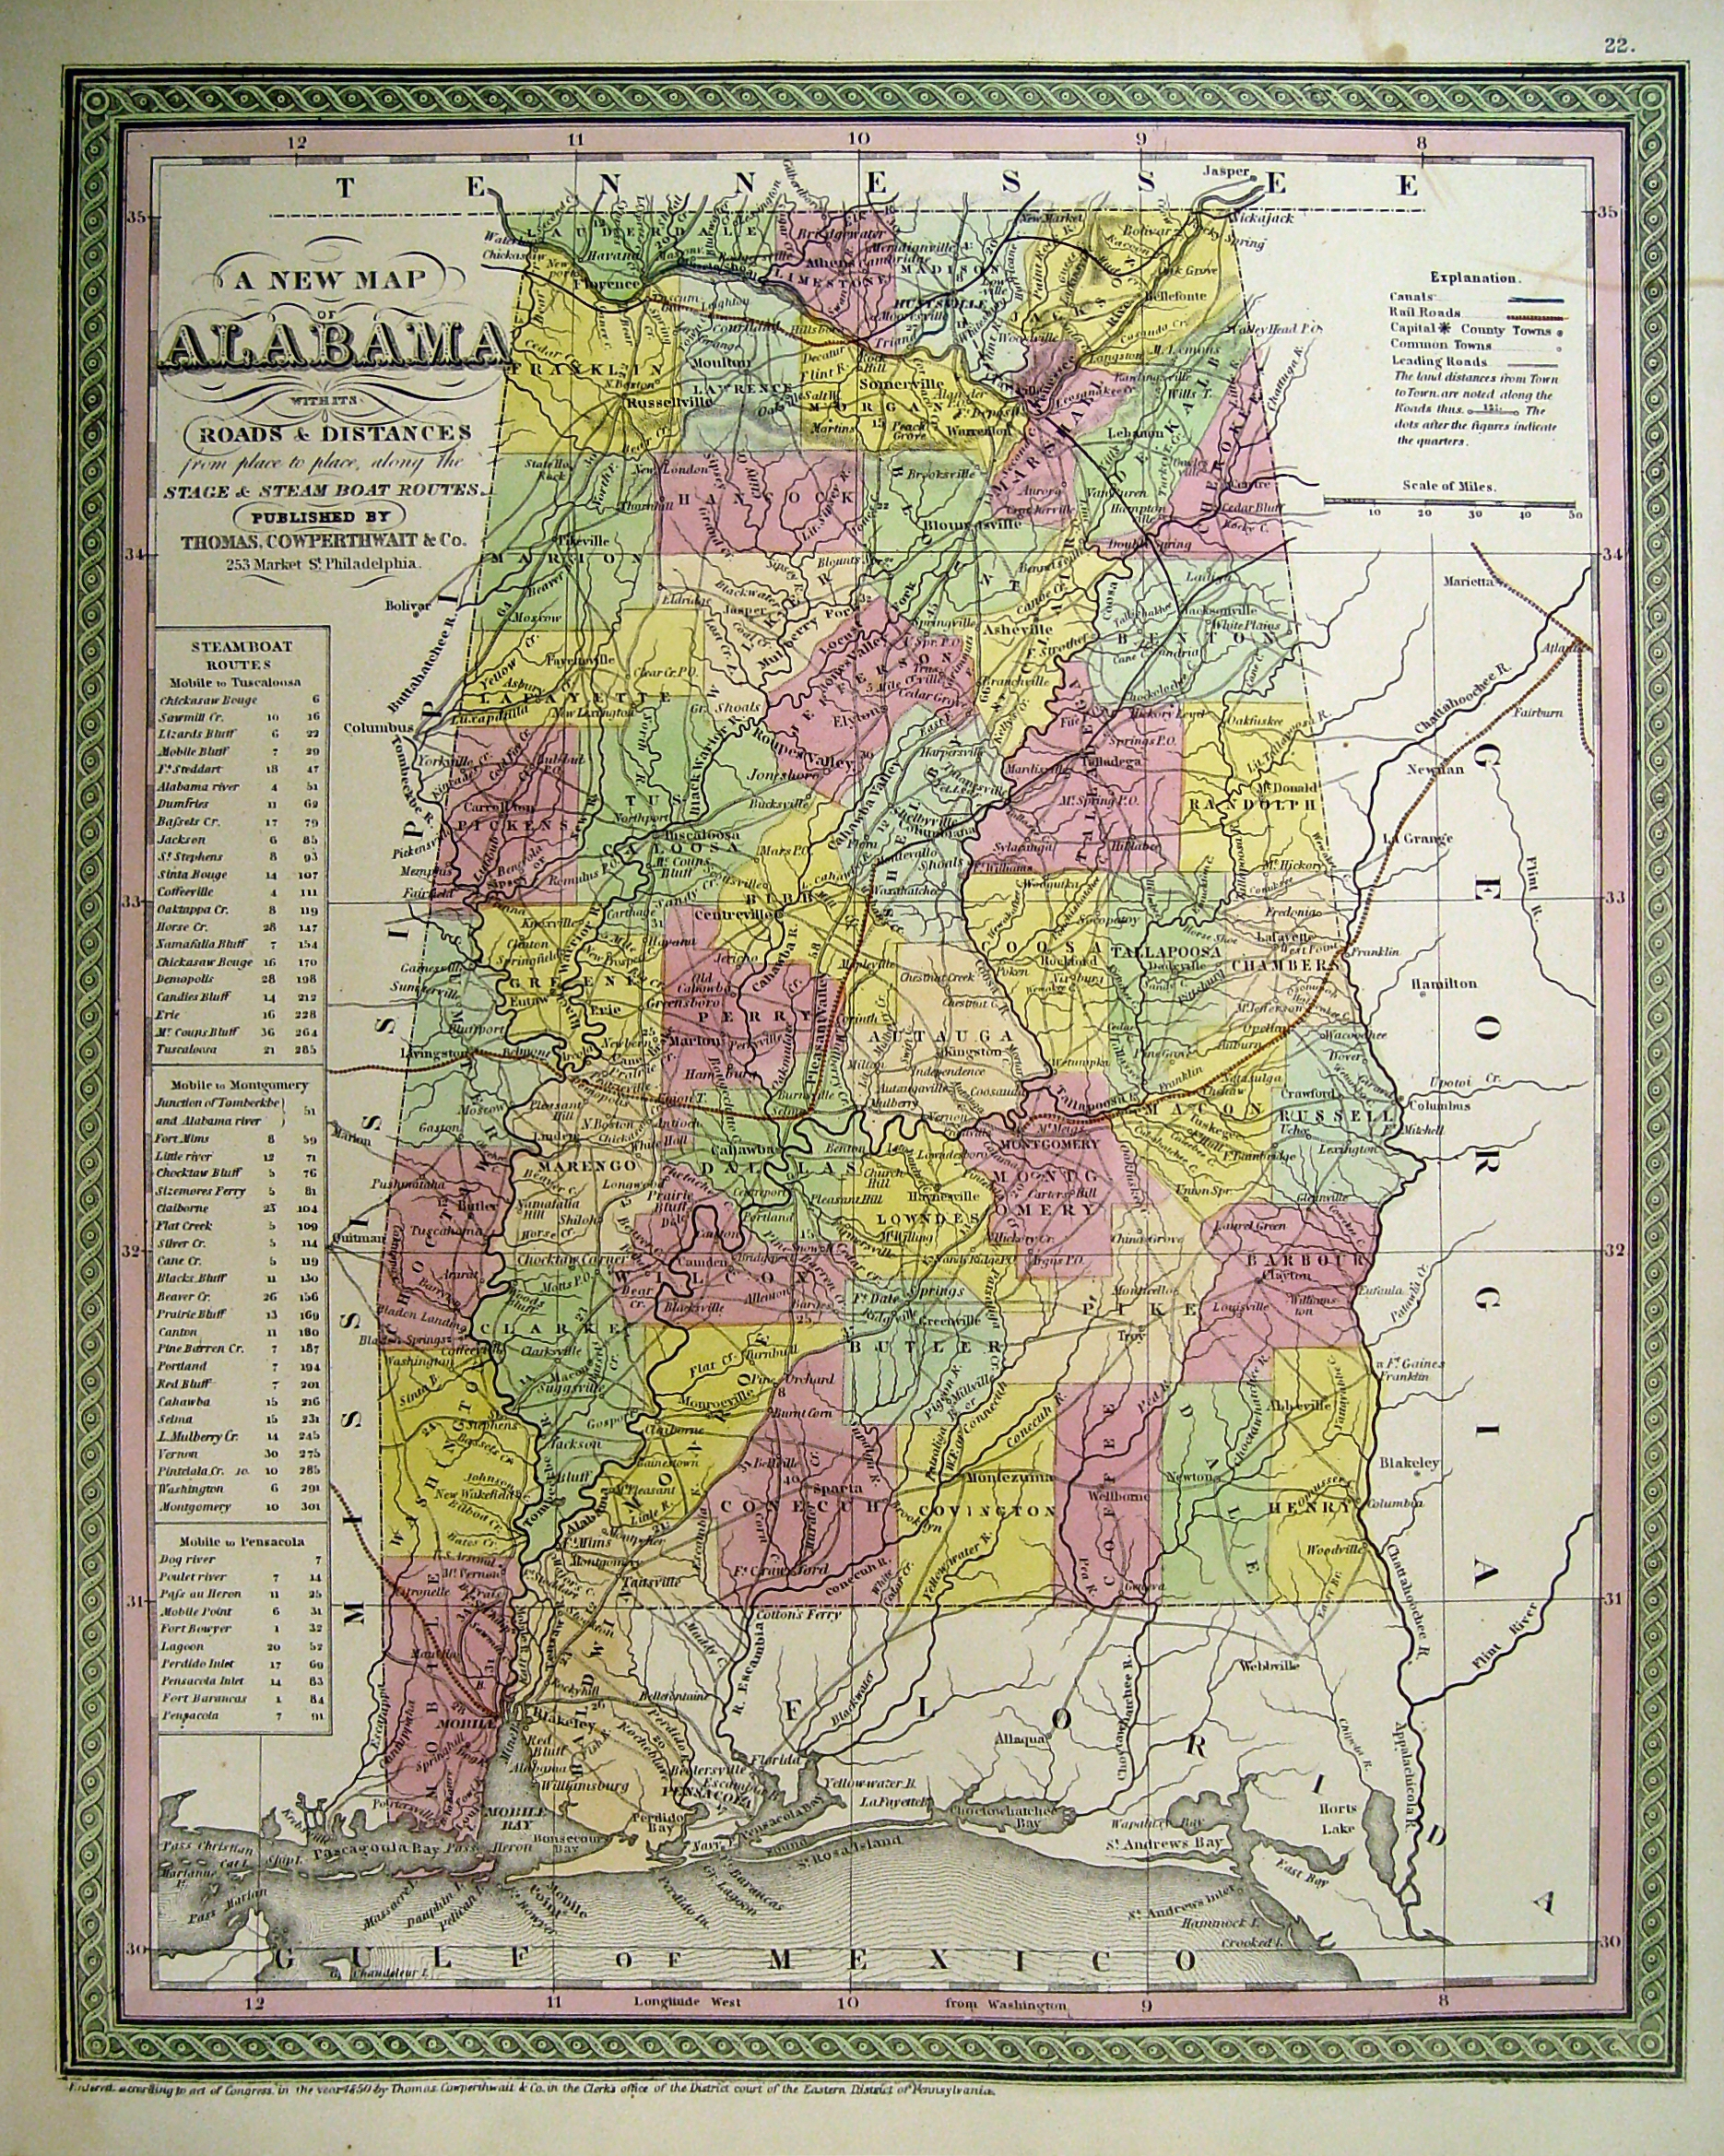 Alabama Maps  Alabama Digital Map Library  Table of Contents  United     State of Alabama